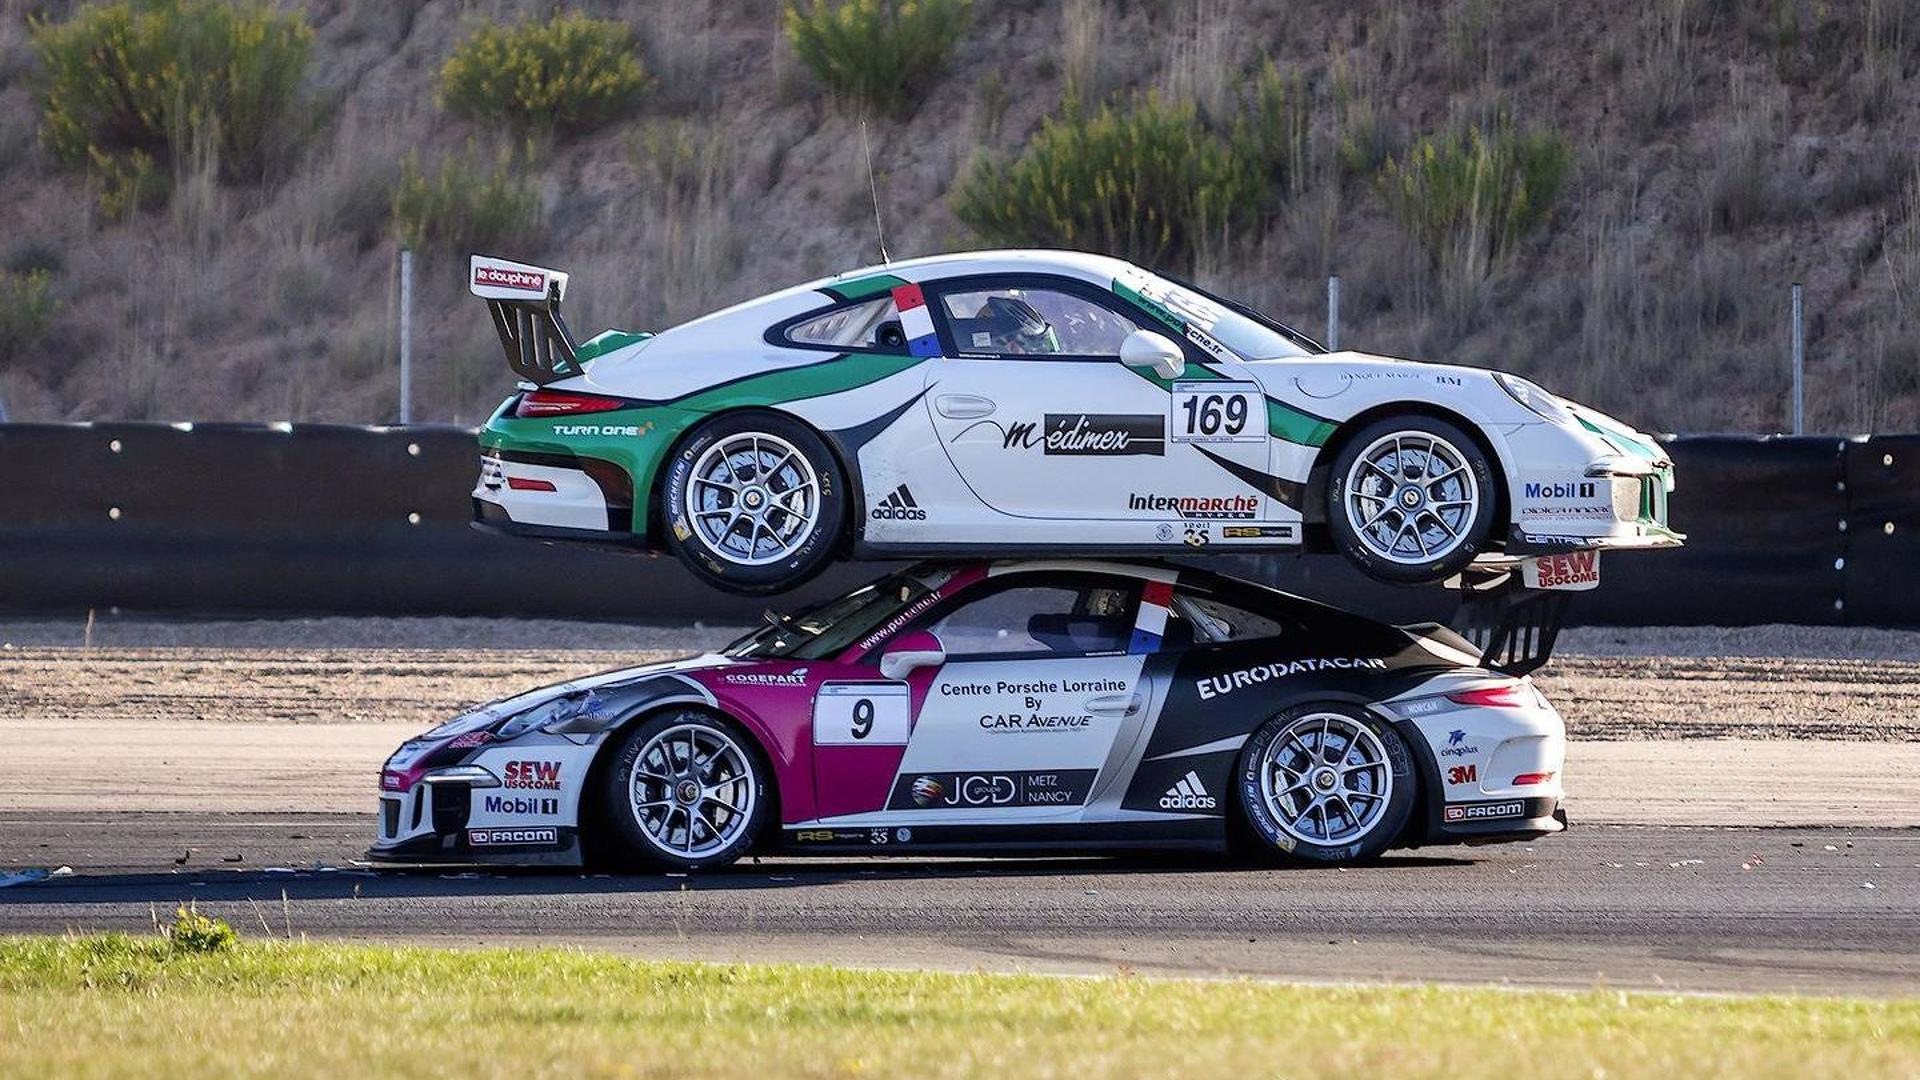 Porsche 911 GT3 racecar ends on top of another 911 GT3 at Carrera Cup France race [video]